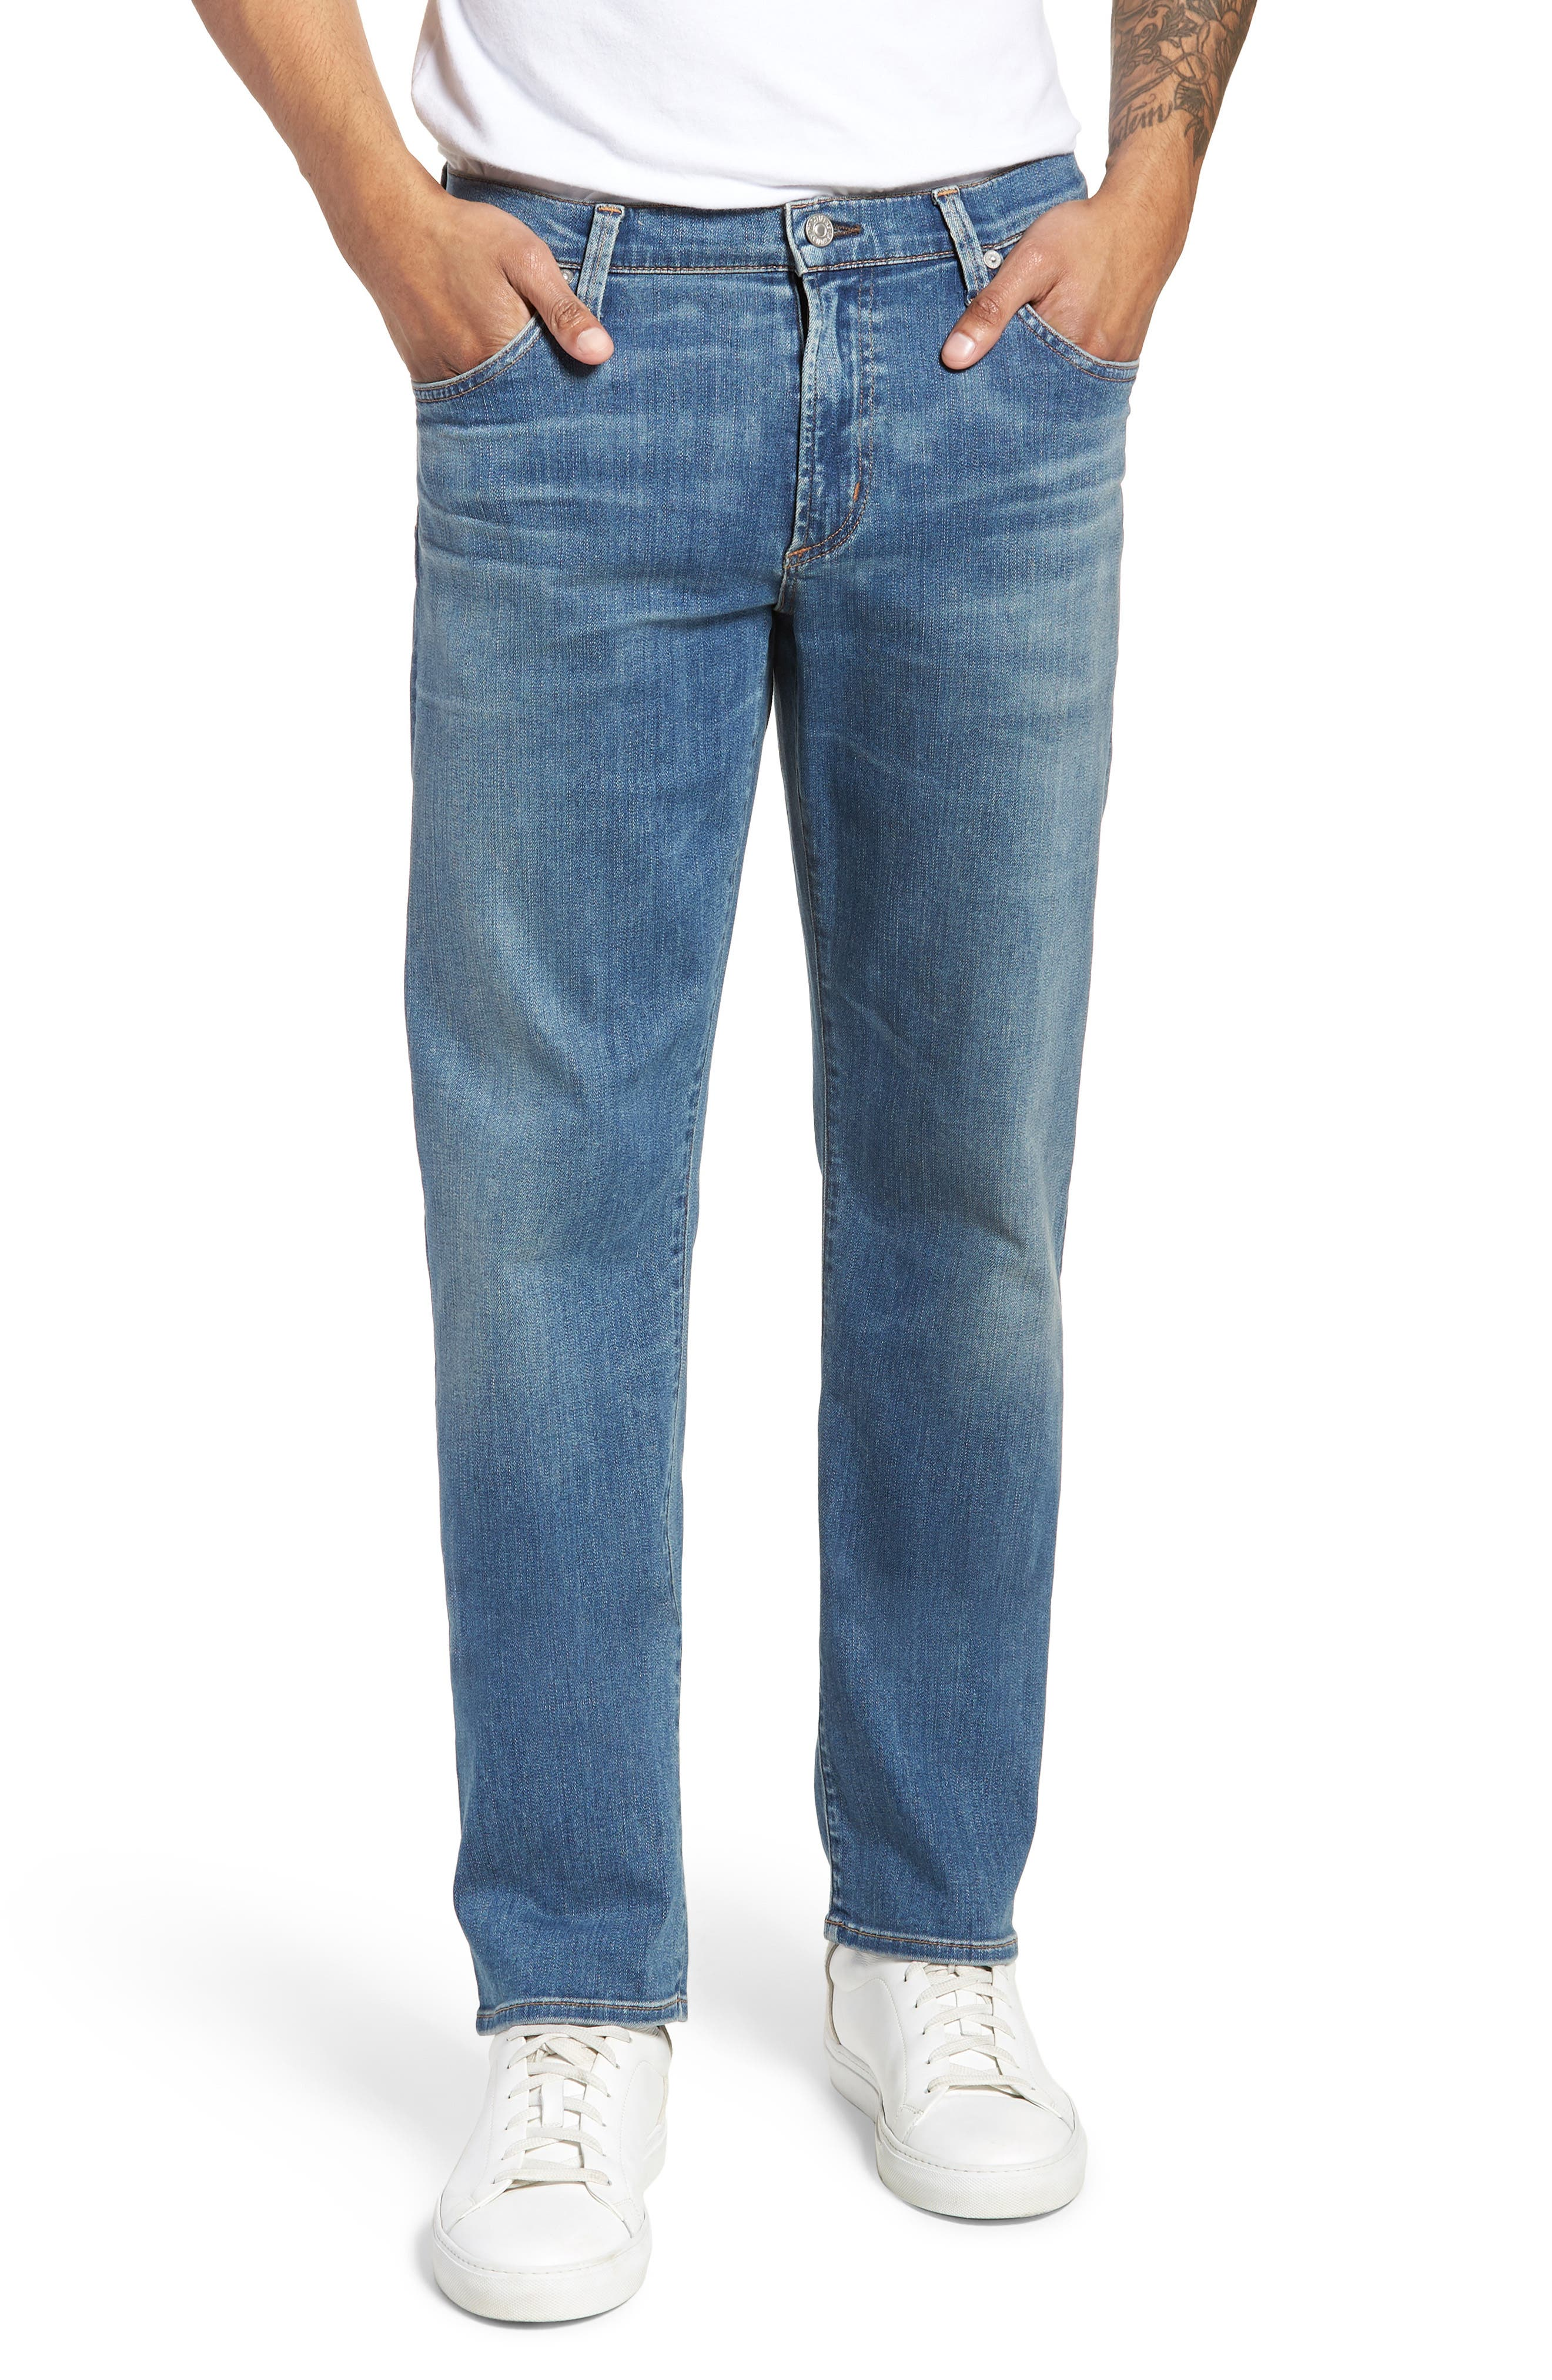 Perform - Gage Slim Straight Leg Jeans,                             Main thumbnail 1, color,                             456